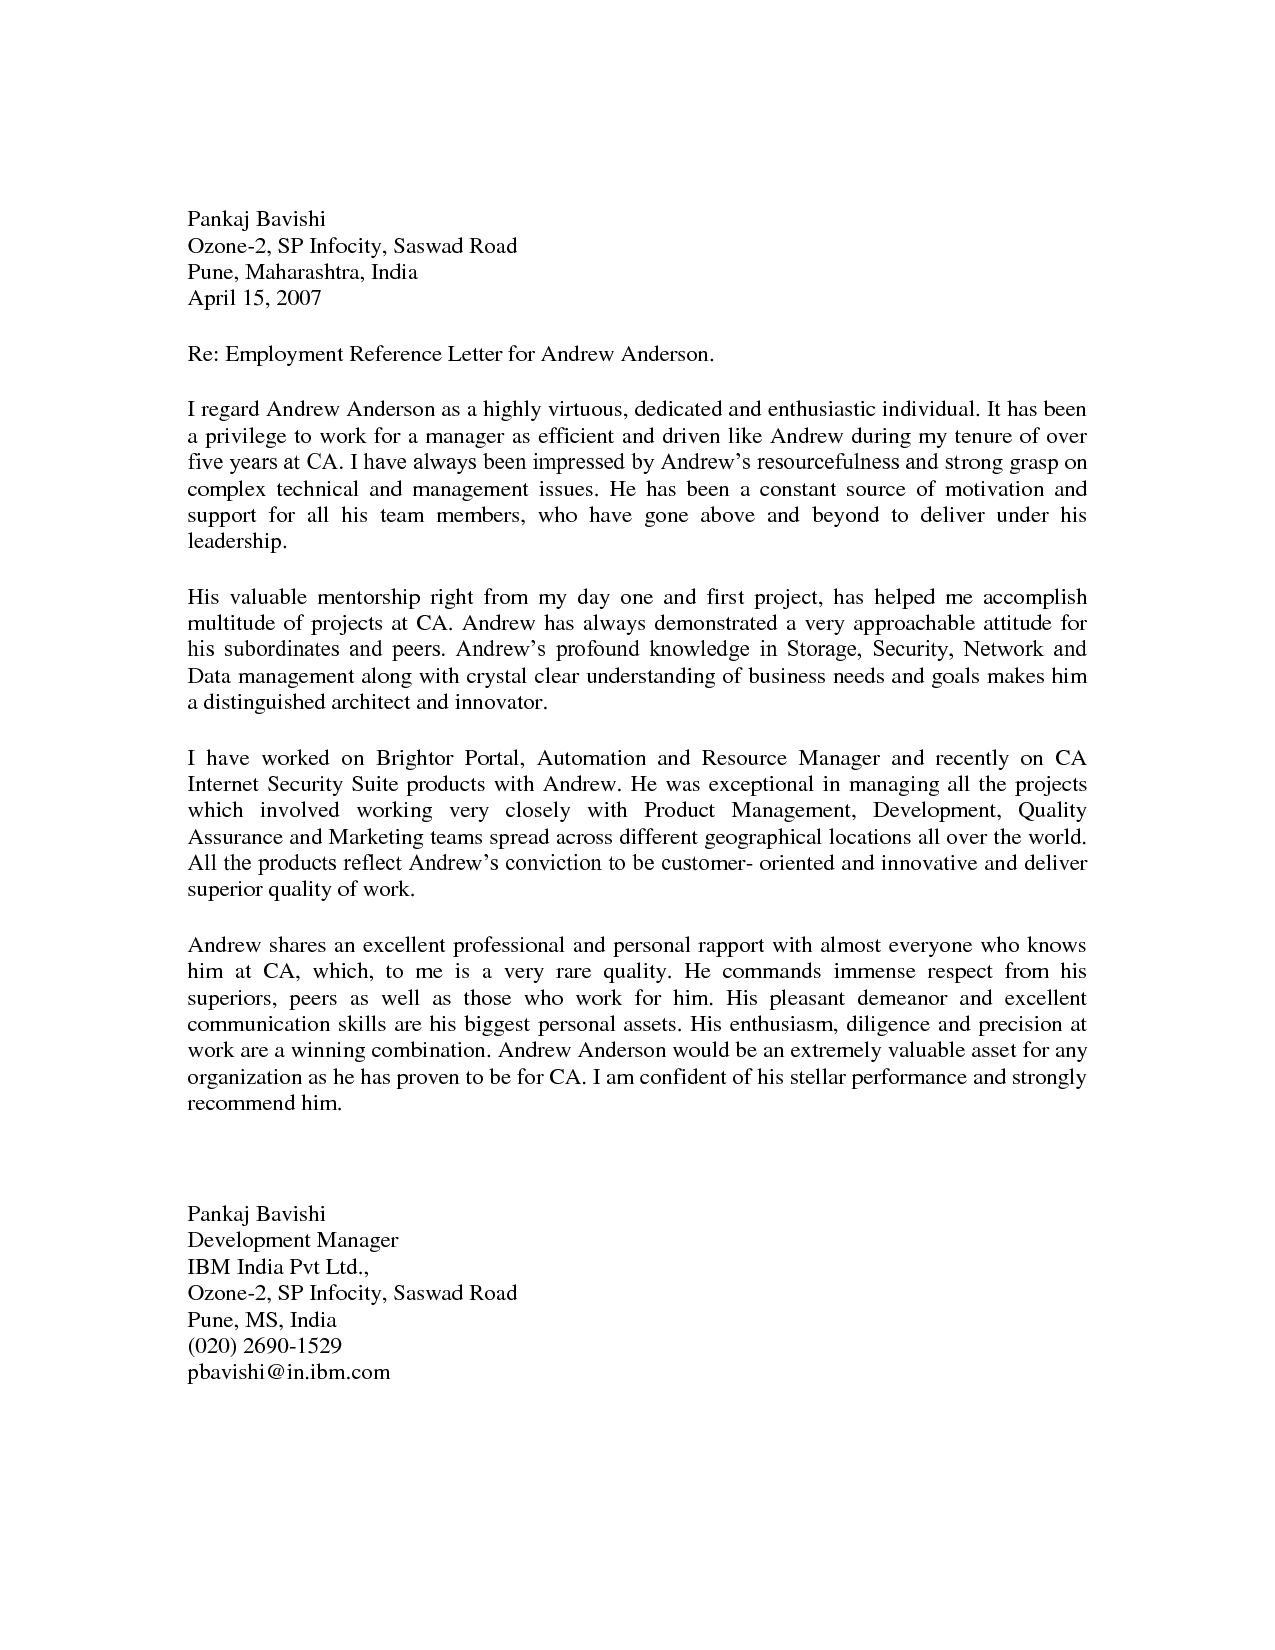 Work Reference Letters Online Business MoneyReference Letter – Letter of Recommendation for Job